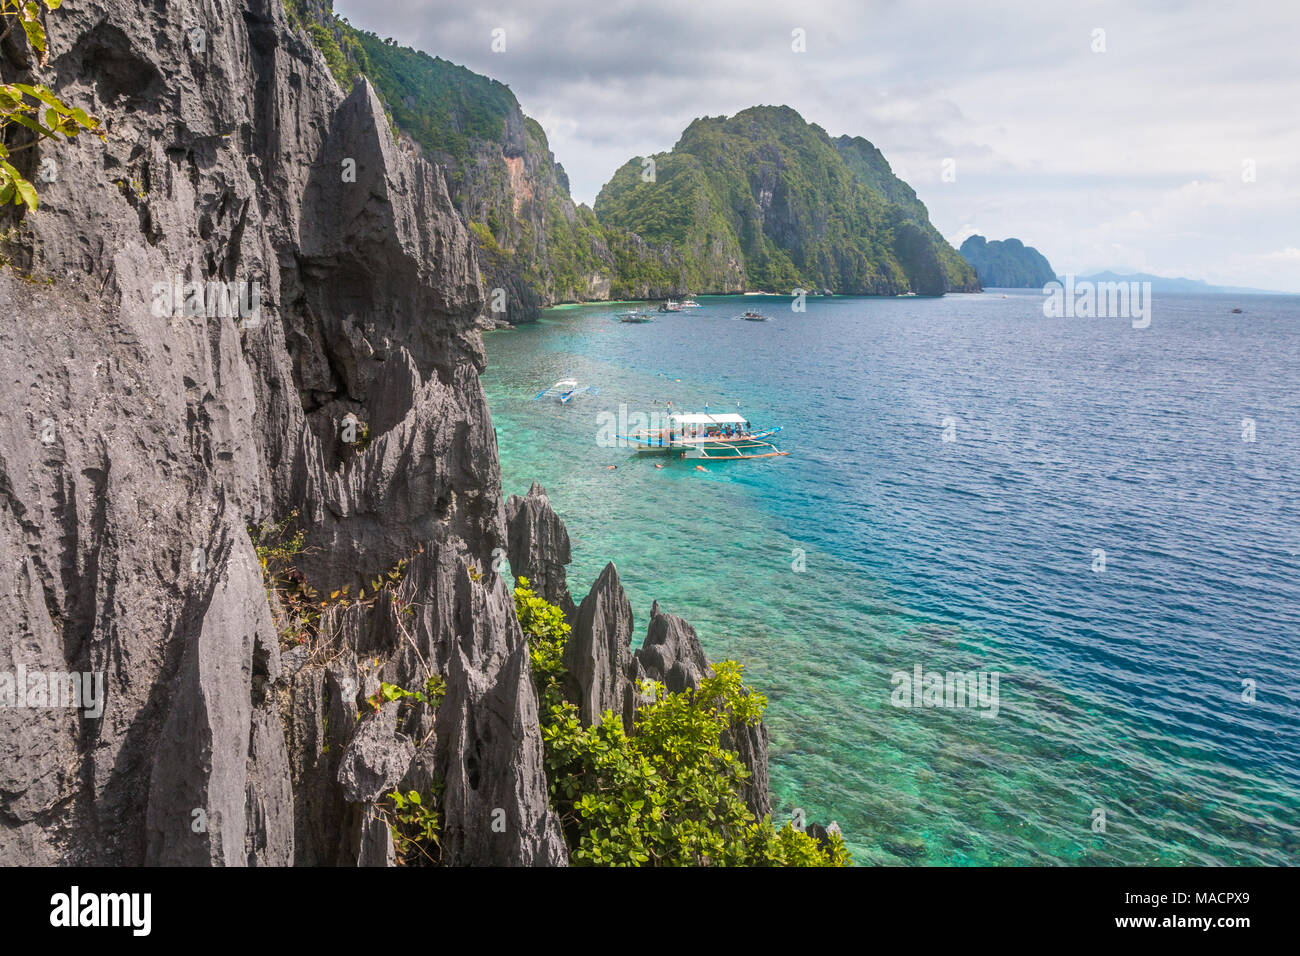 View of El Nido Palawan Lagoon - Stock Image